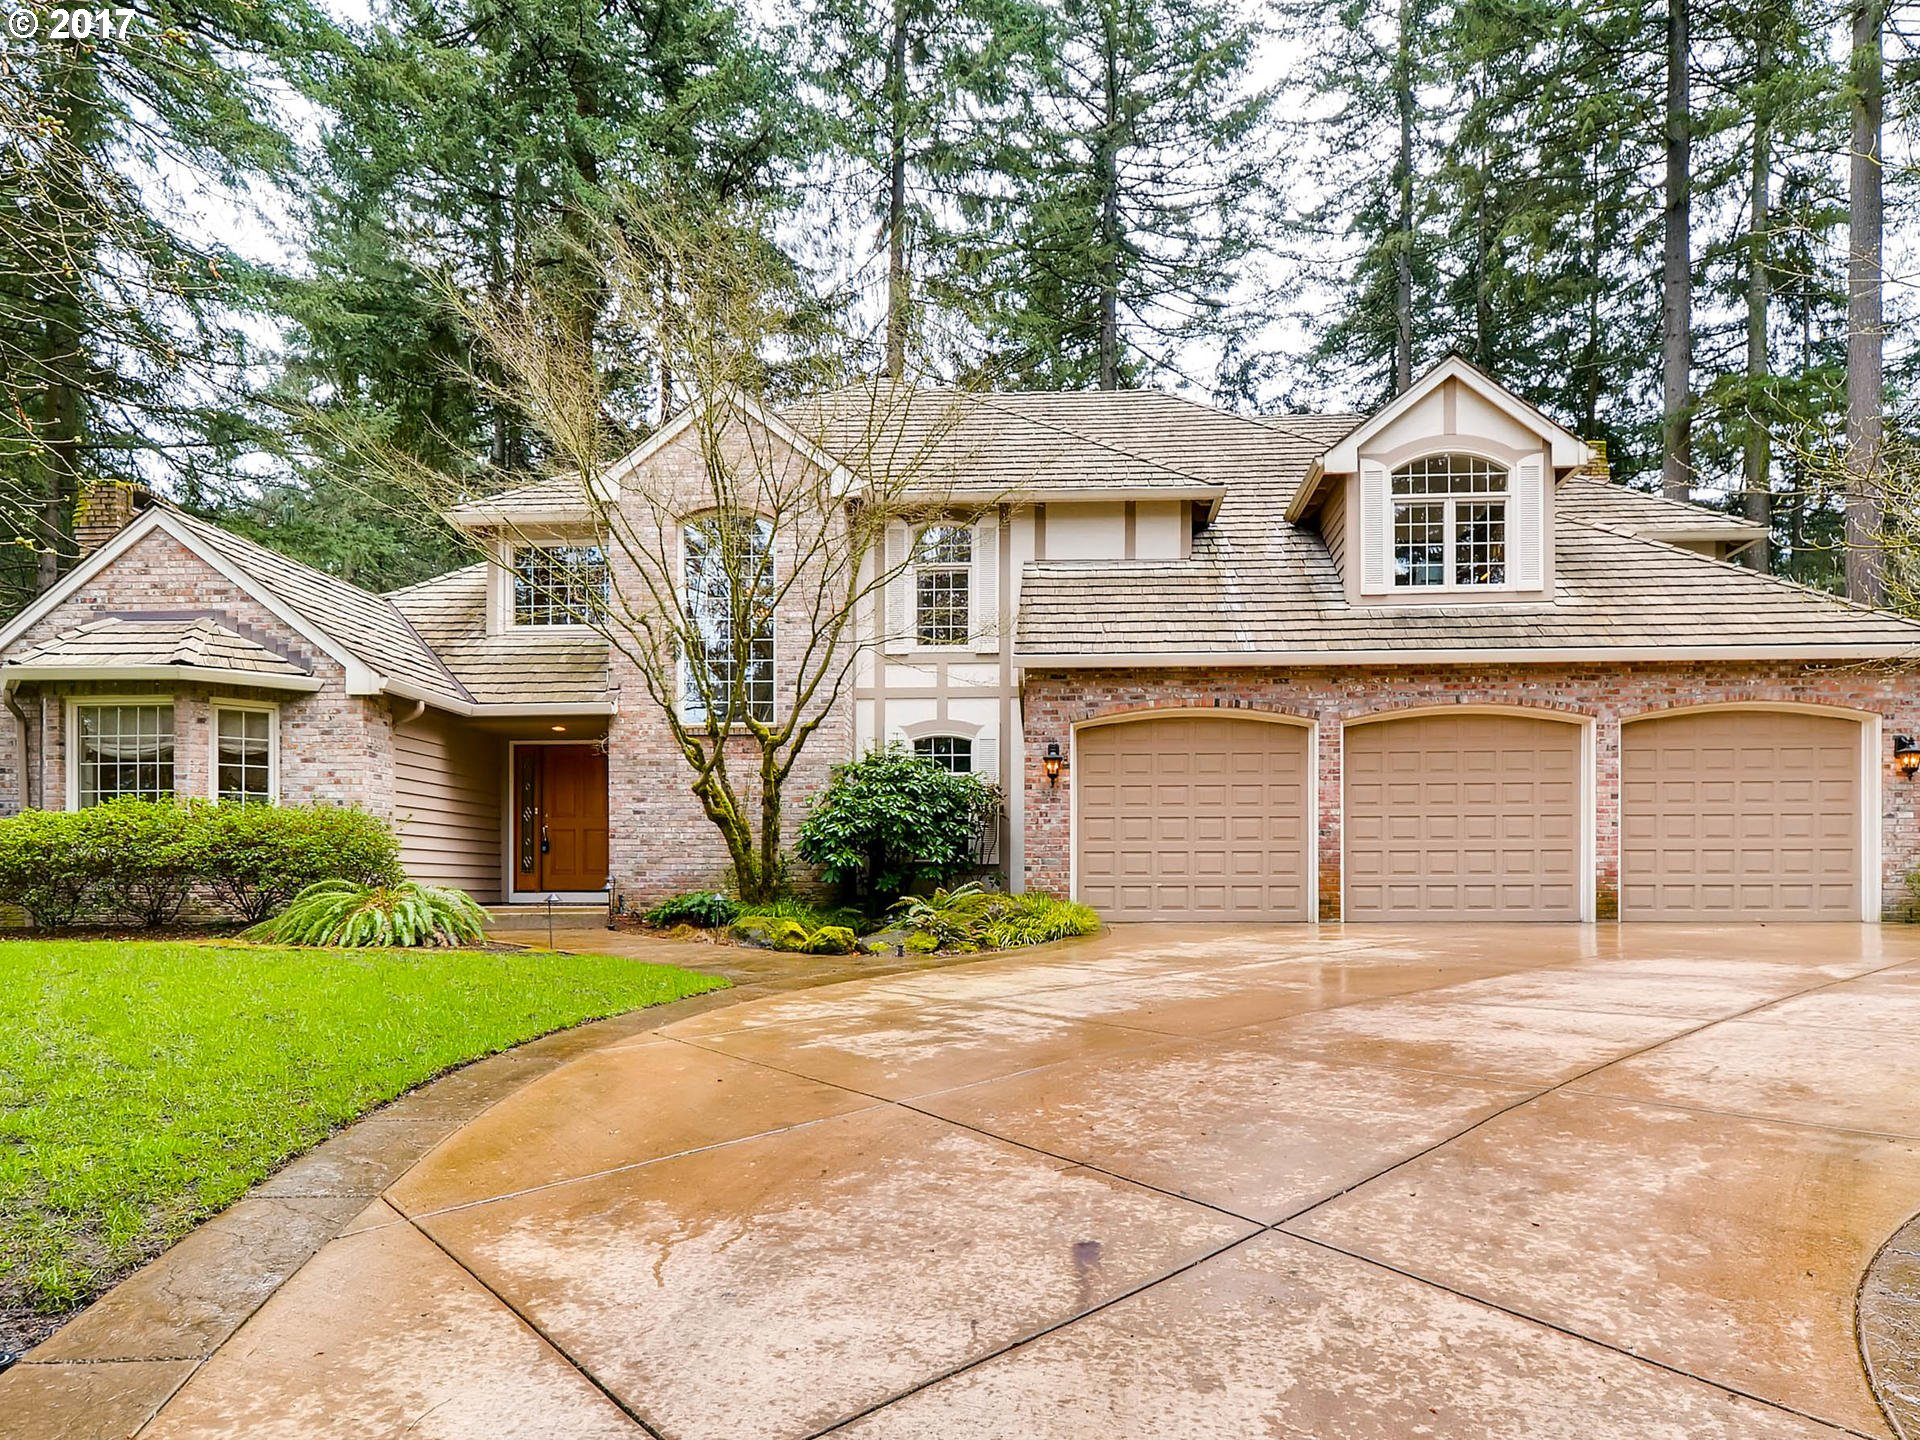 1976 PALISADES TERRACE DR, Lake Oswego, OR 97034